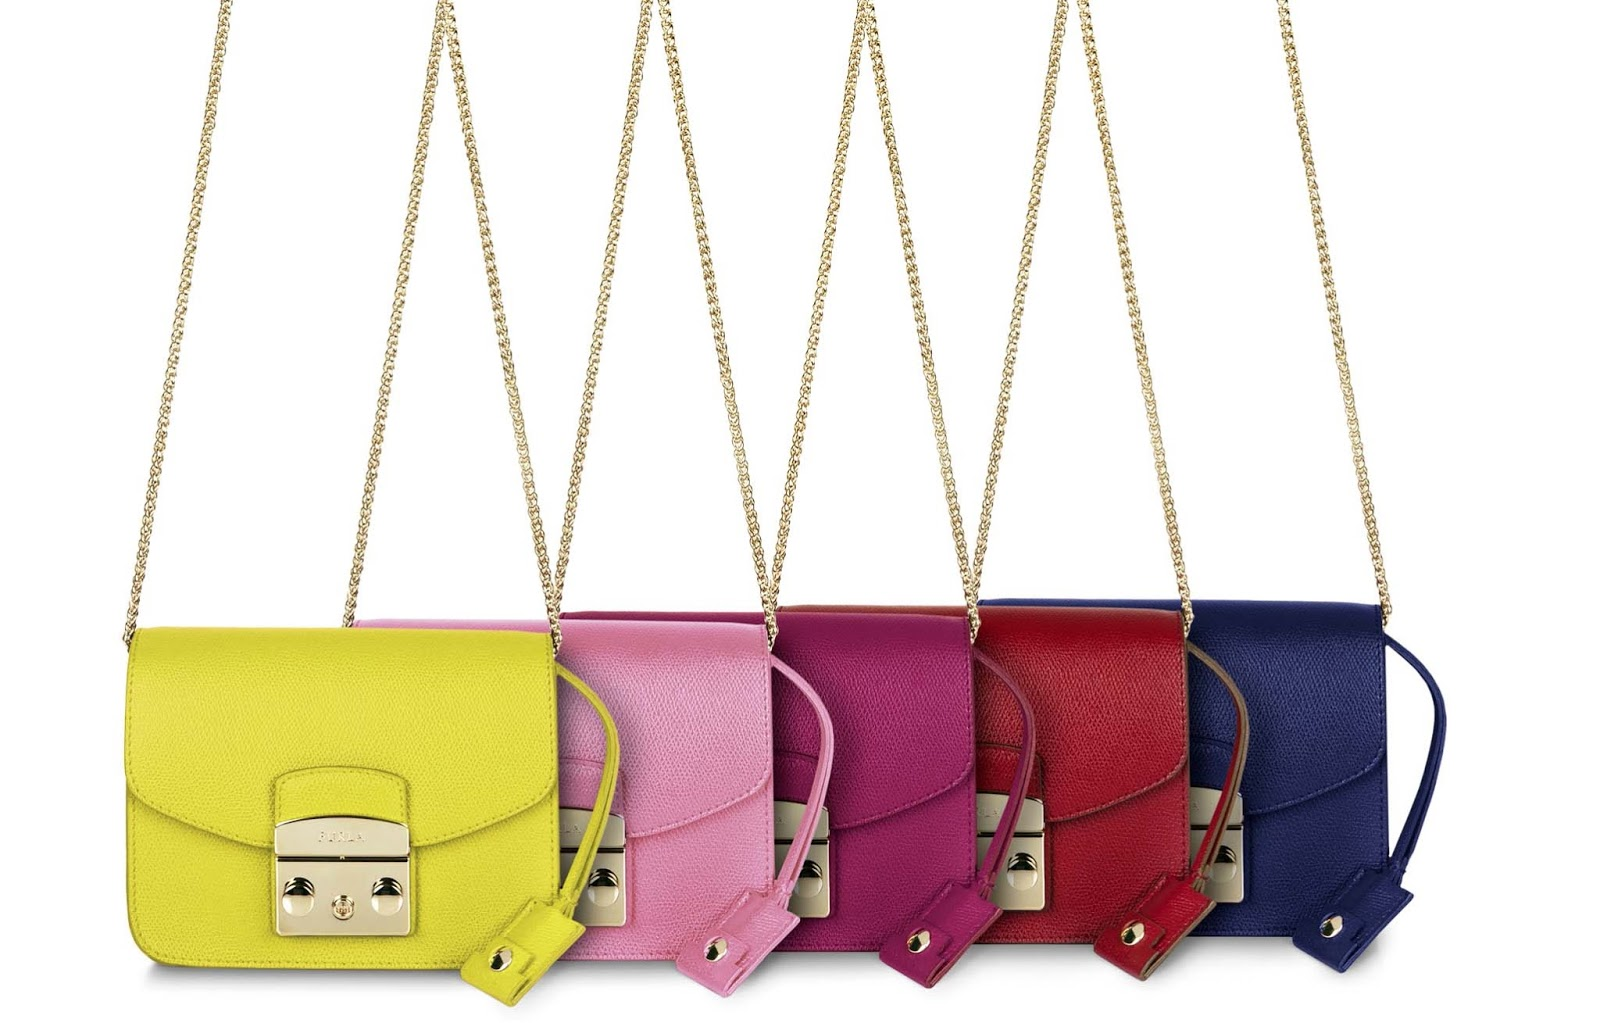 Eniwhere Fashion - Metropolis di Furla - Come indossarla